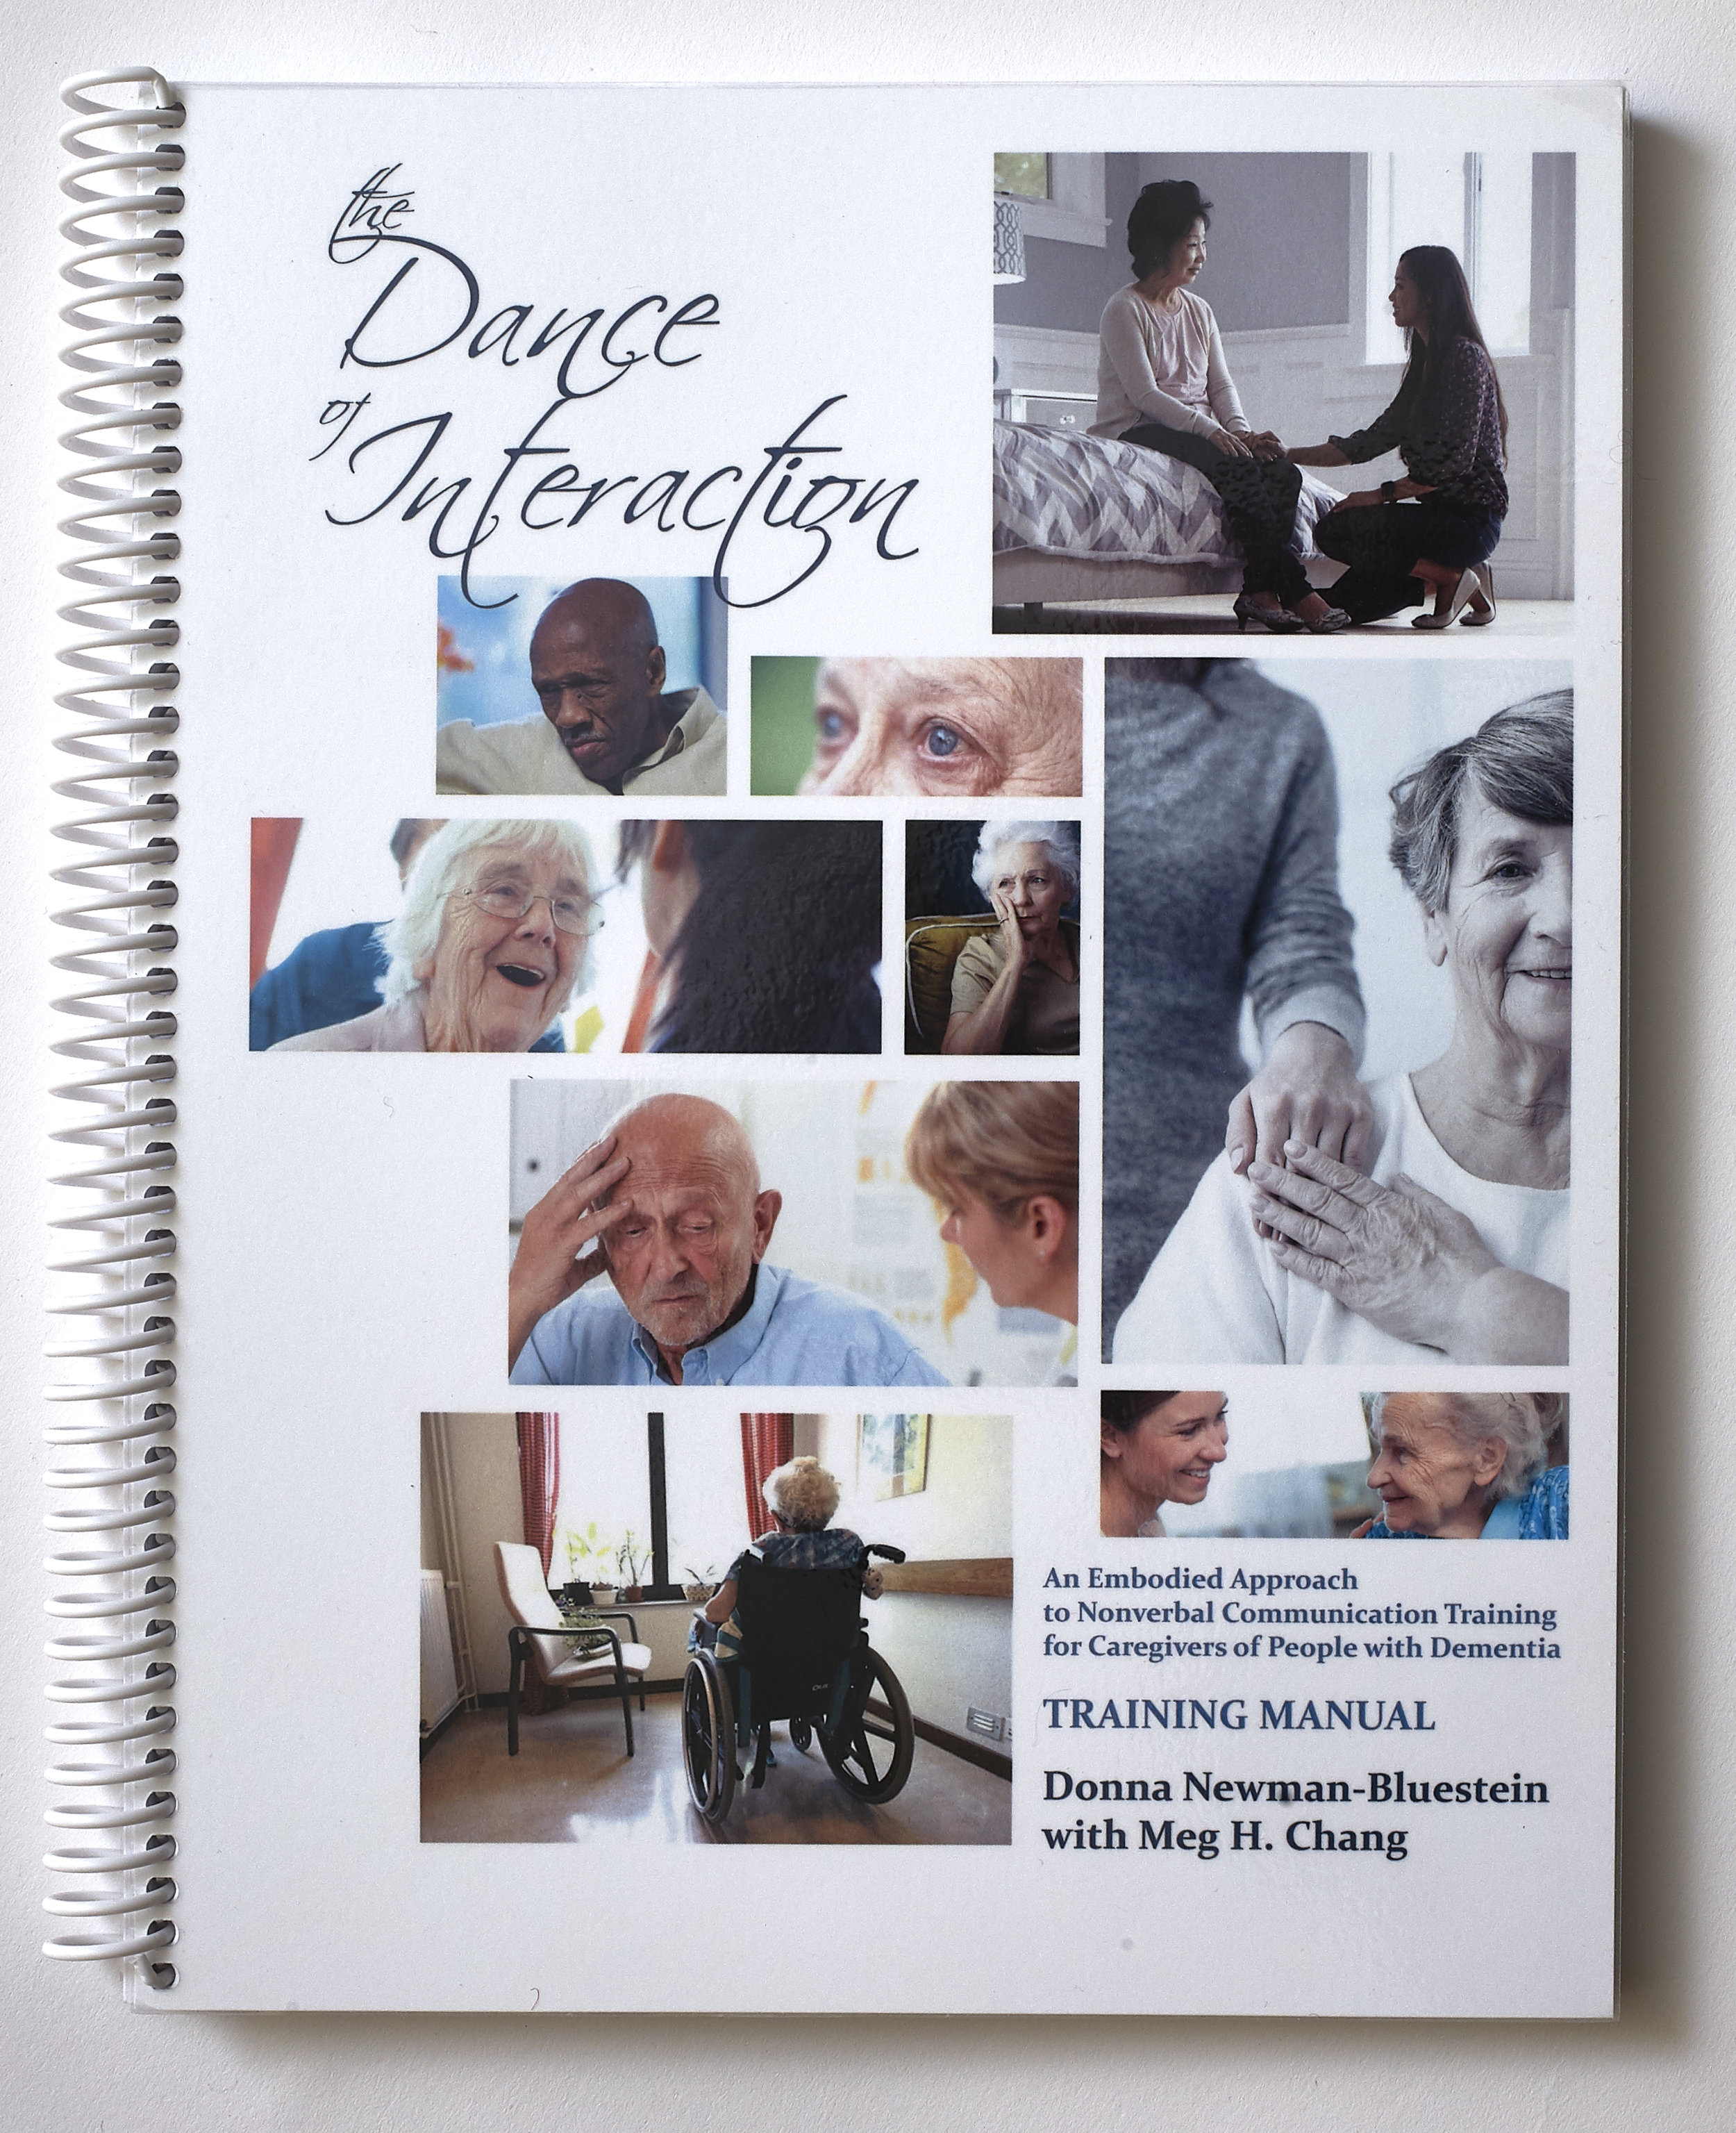 Dance of Interaction Manual - The Dance of Interaction: An Embodied Approach to Nonverbal Communication Training for Caregivers of People with Dementia